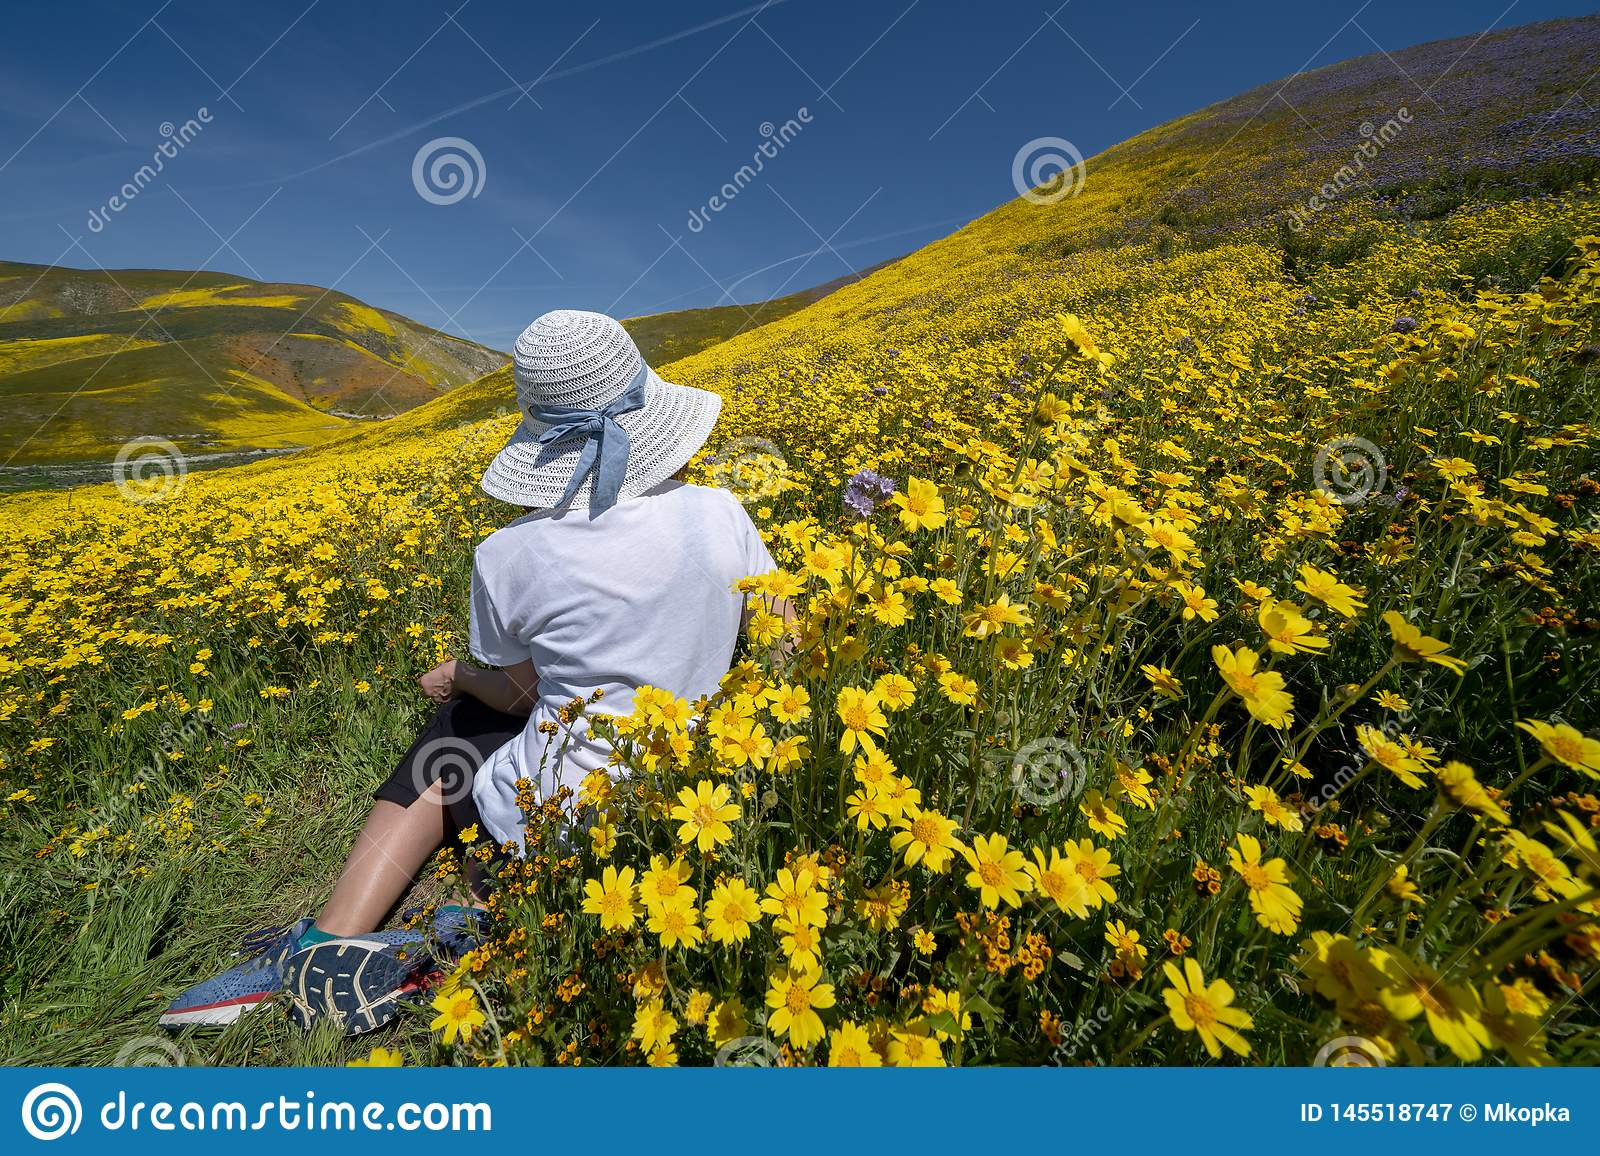 Beautiful woman with back facing camera, sitting in a field of yellow wildflowers. Concept for spring allergy season